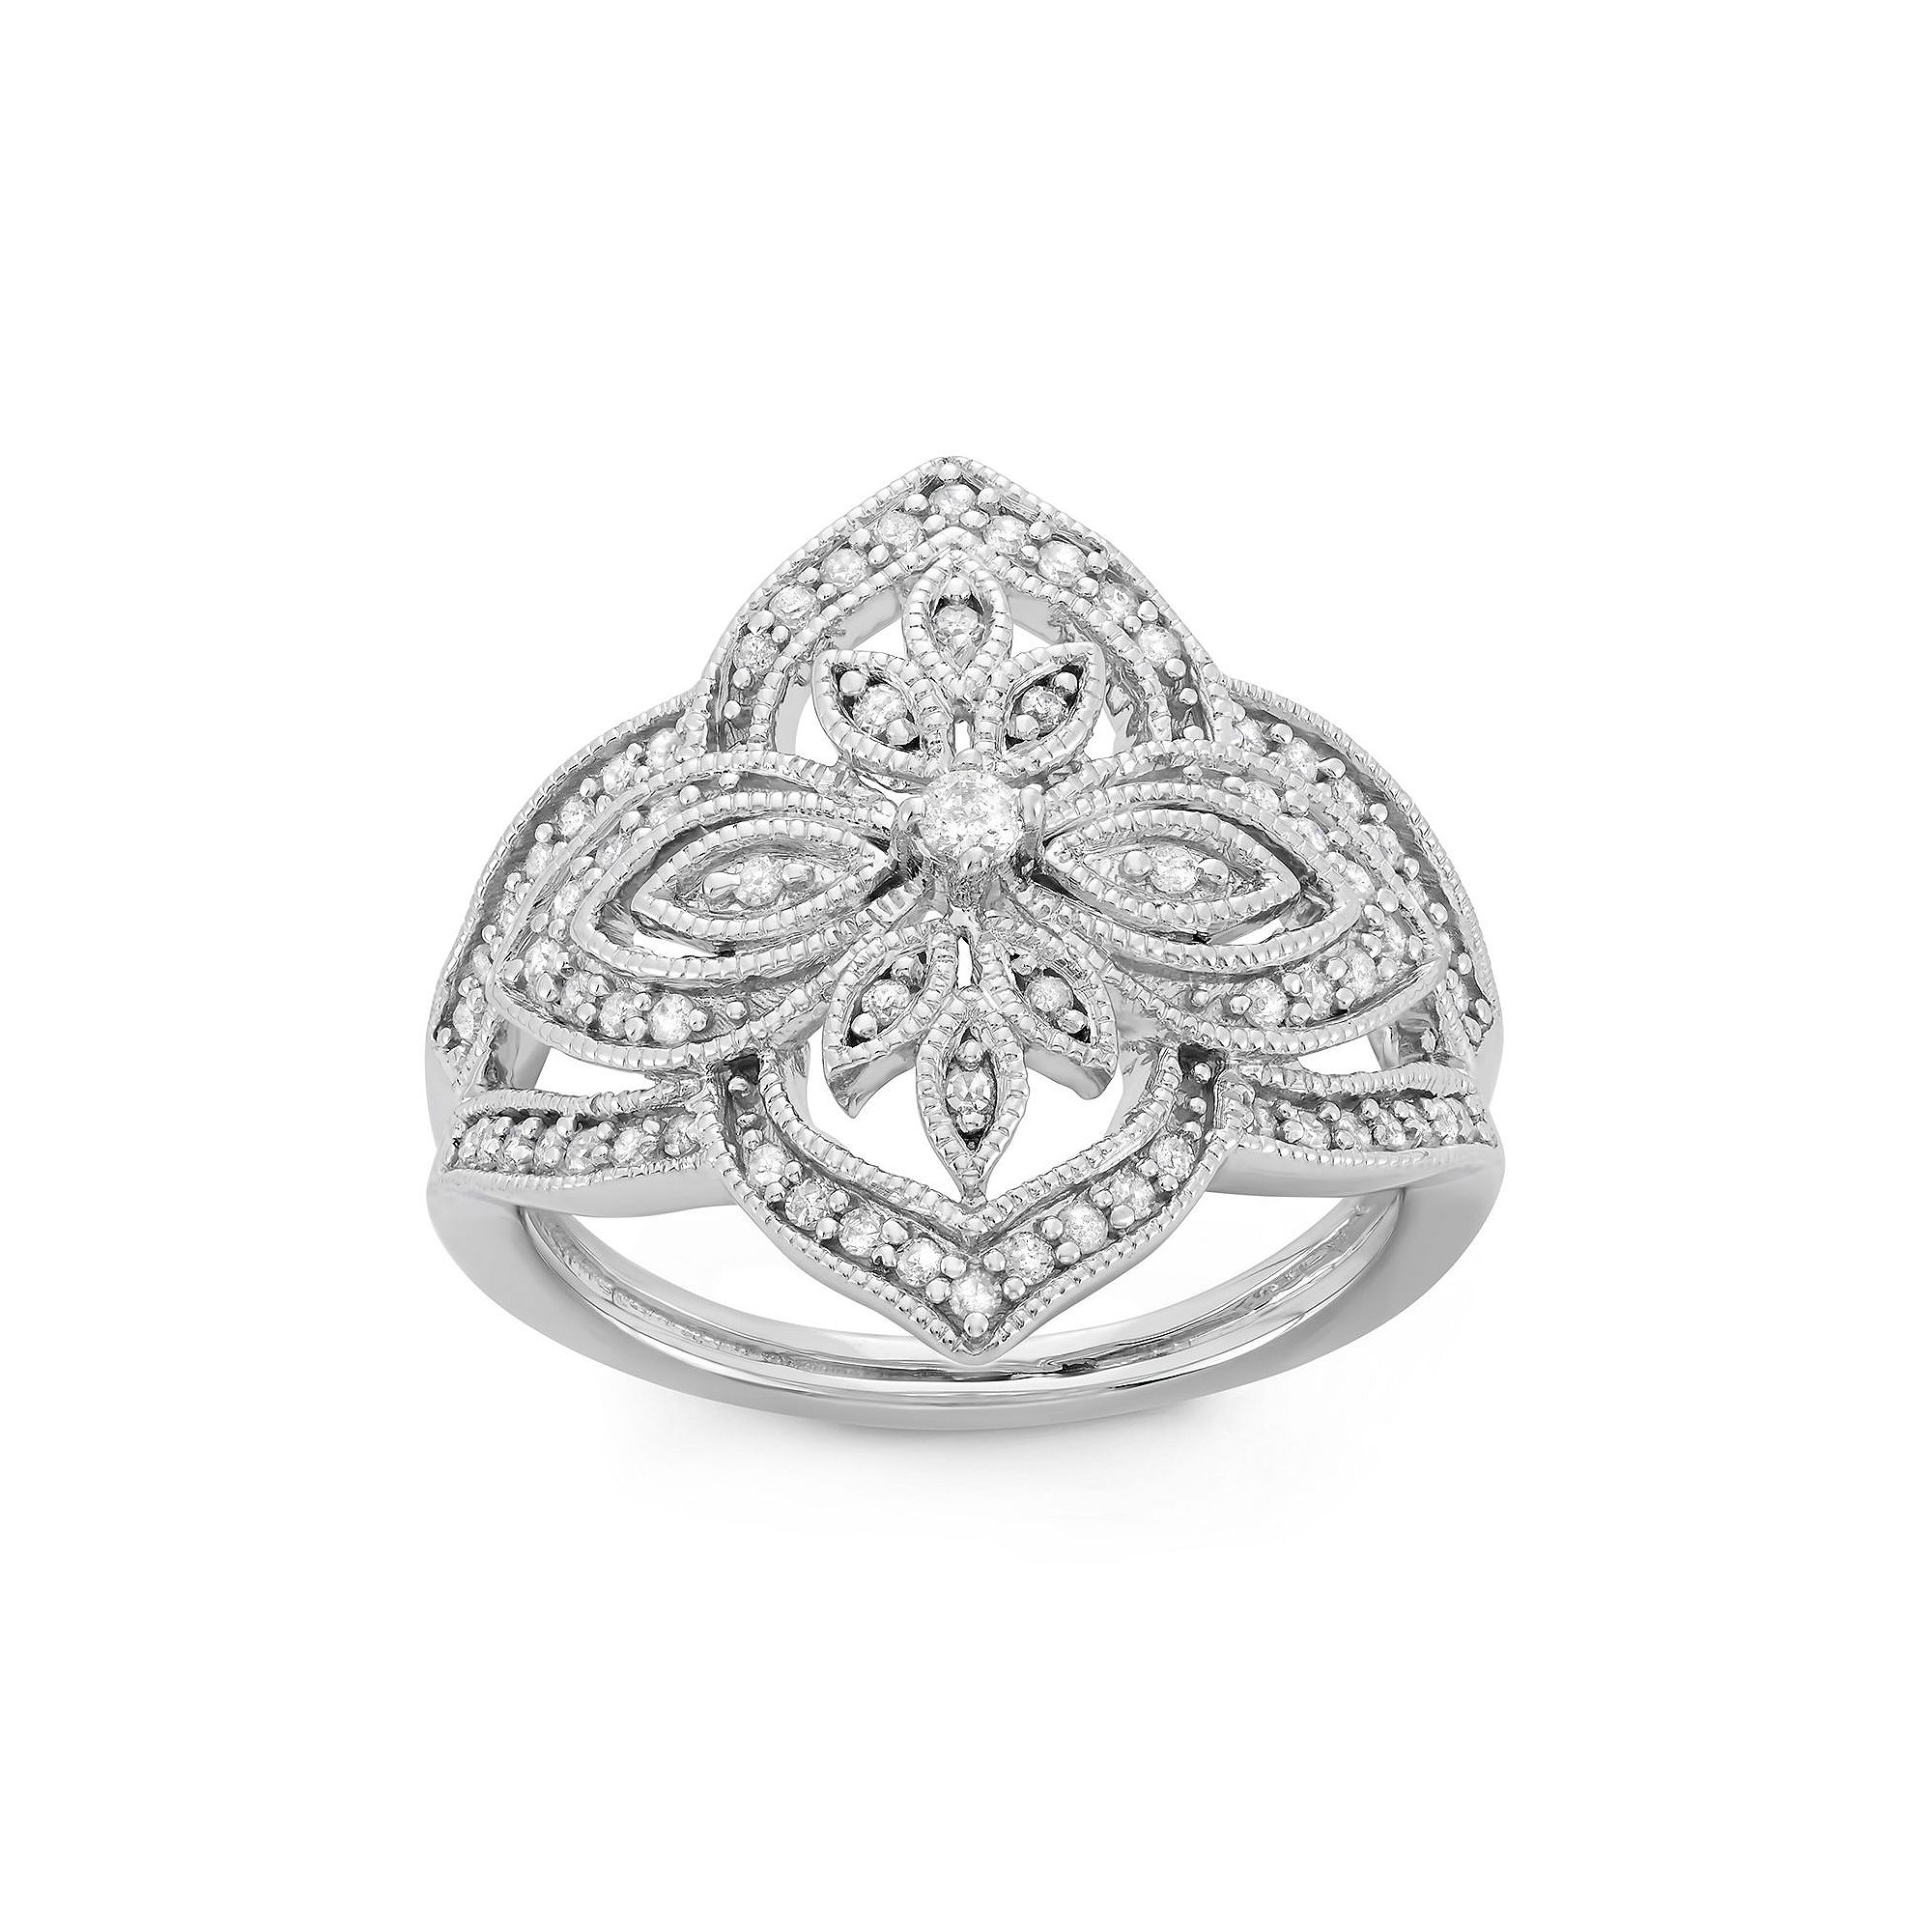 Womens 3/8 CT. T.W. White Diamond Sterling Silver Cocktail Ring